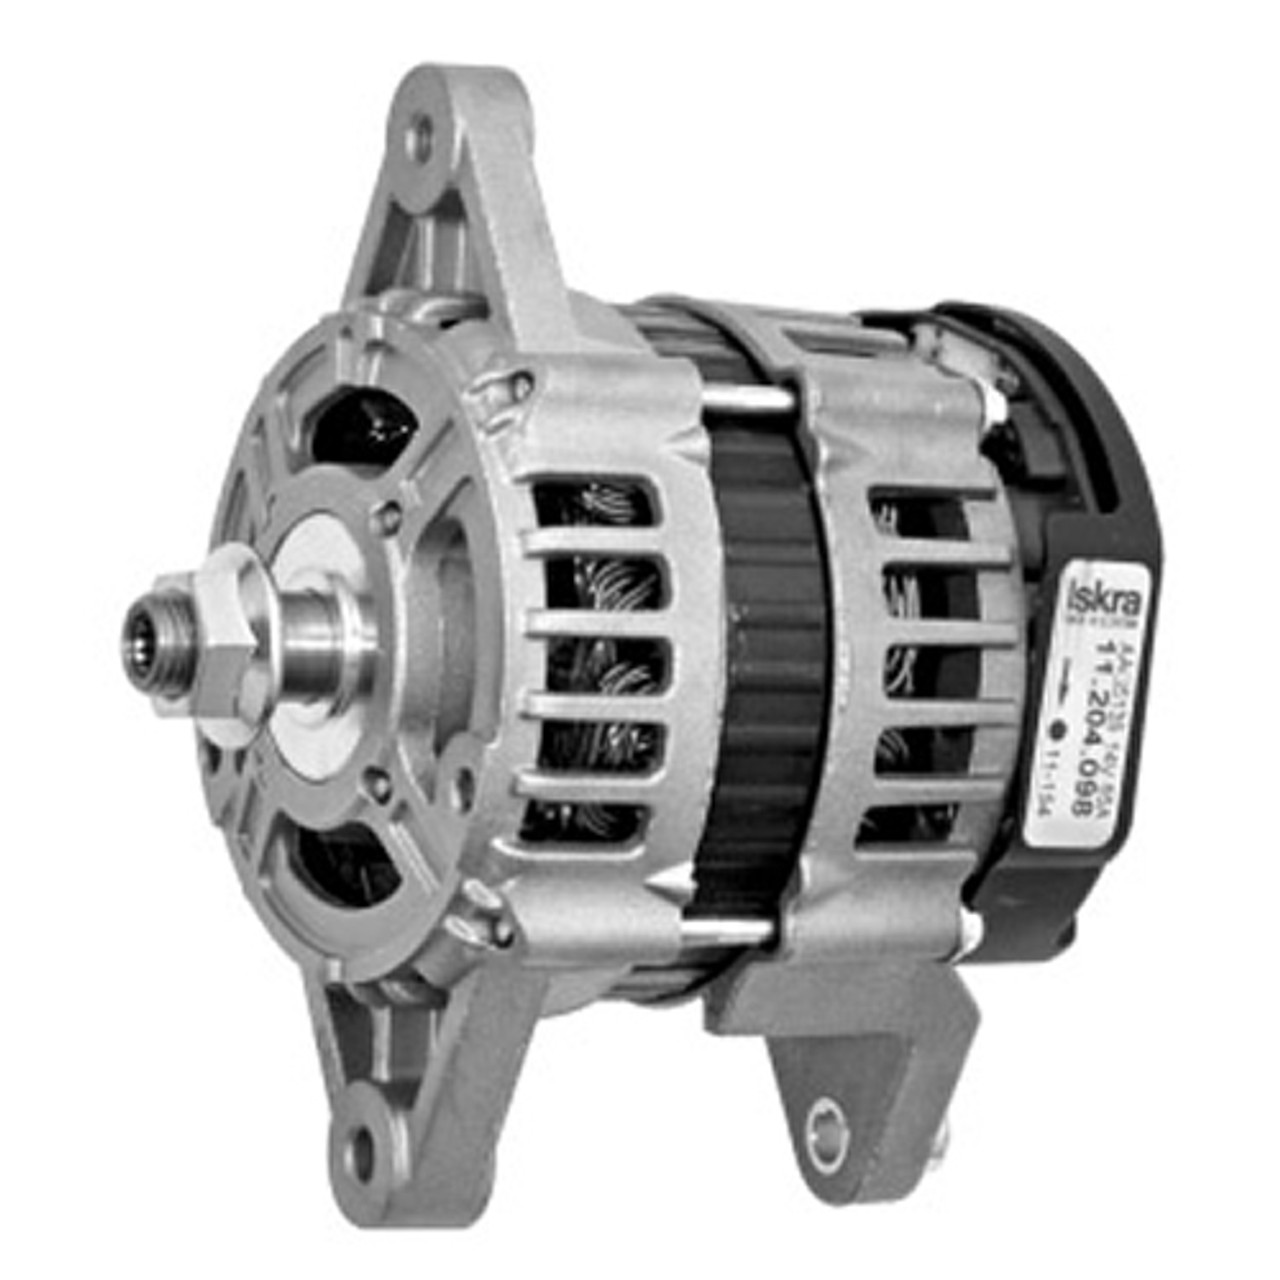 small resolution of deutz ag khd l4 3 6 engine letrika alternator mg75